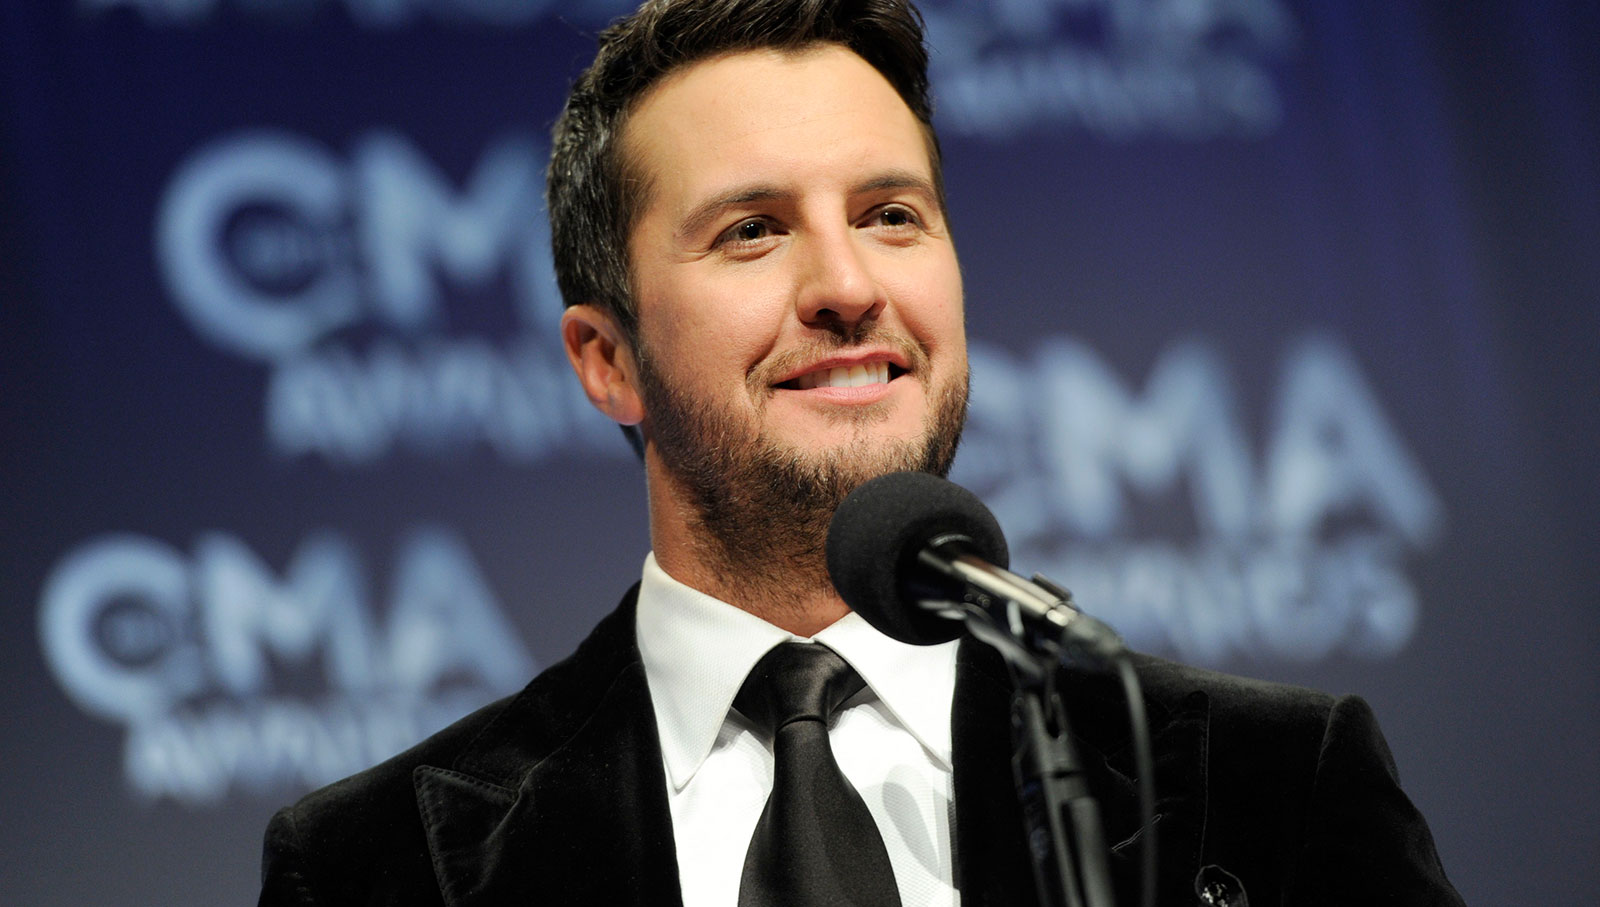 Luke Bryan 39 S Compassionate Act After Devastating Family